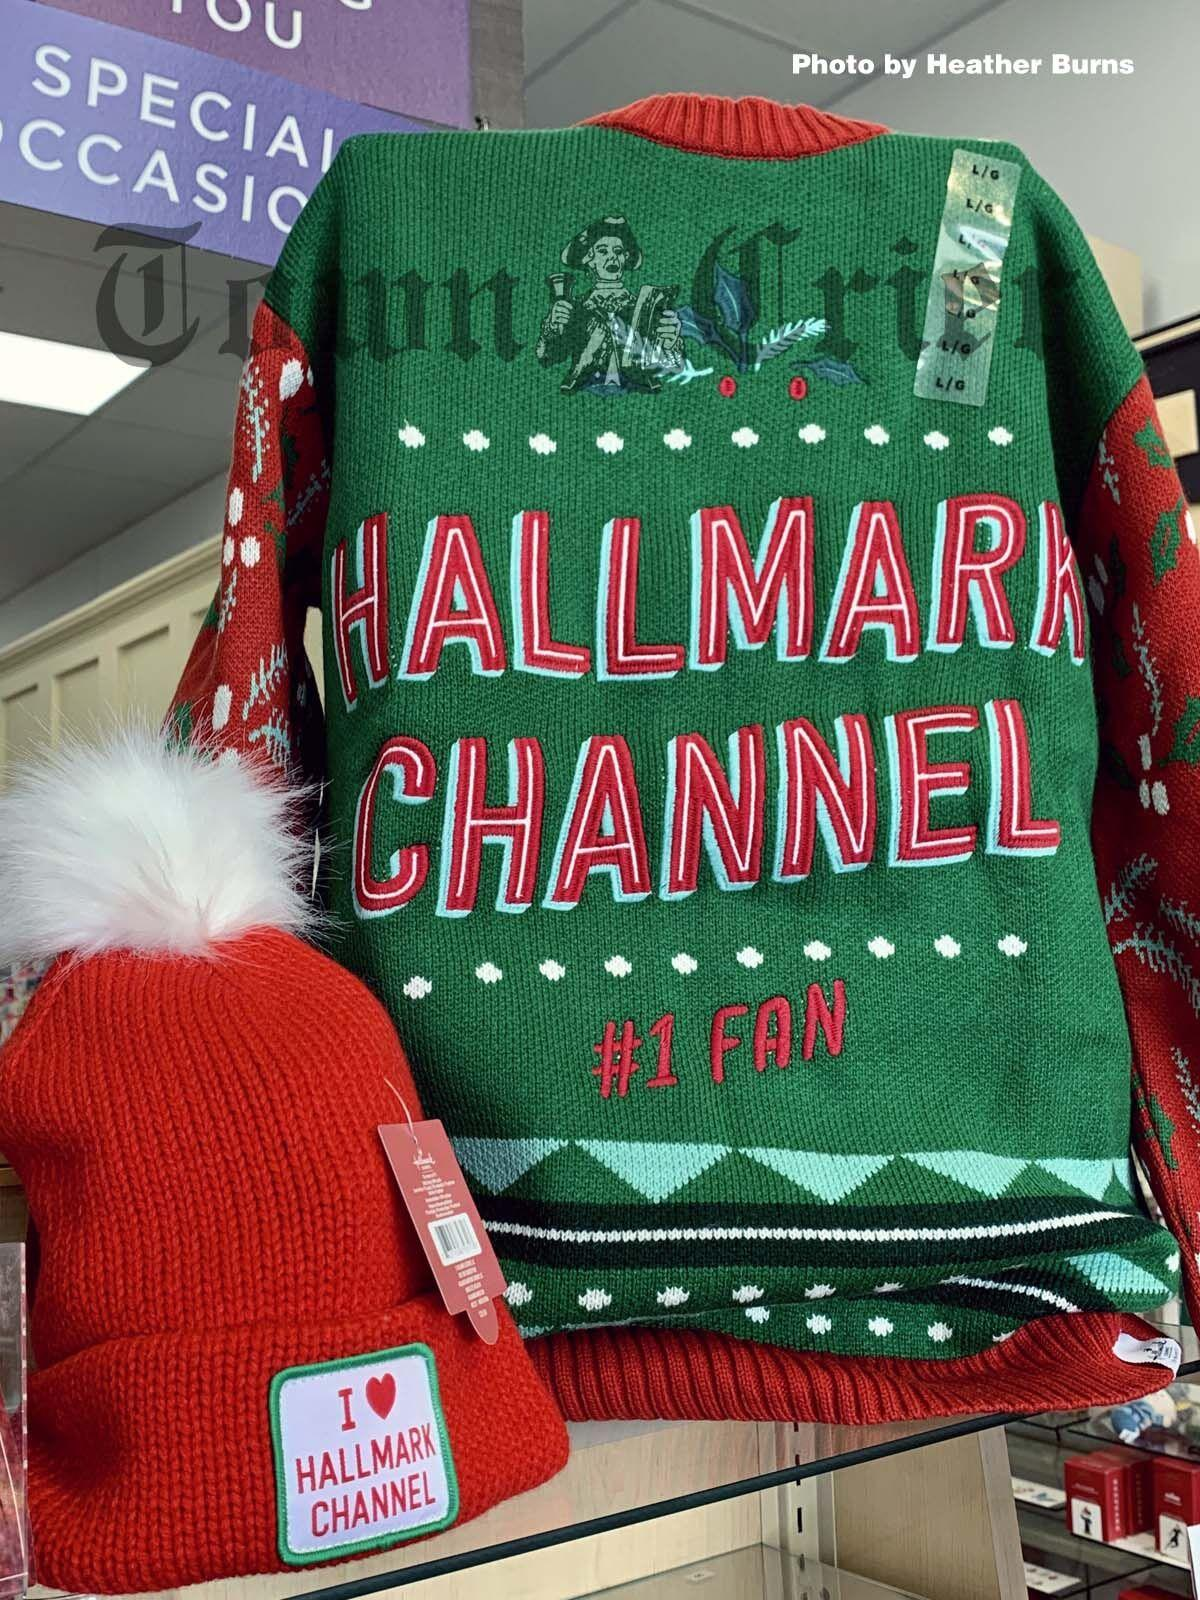 Hallmark's Christmas movies has sparked a line of fan merchandise